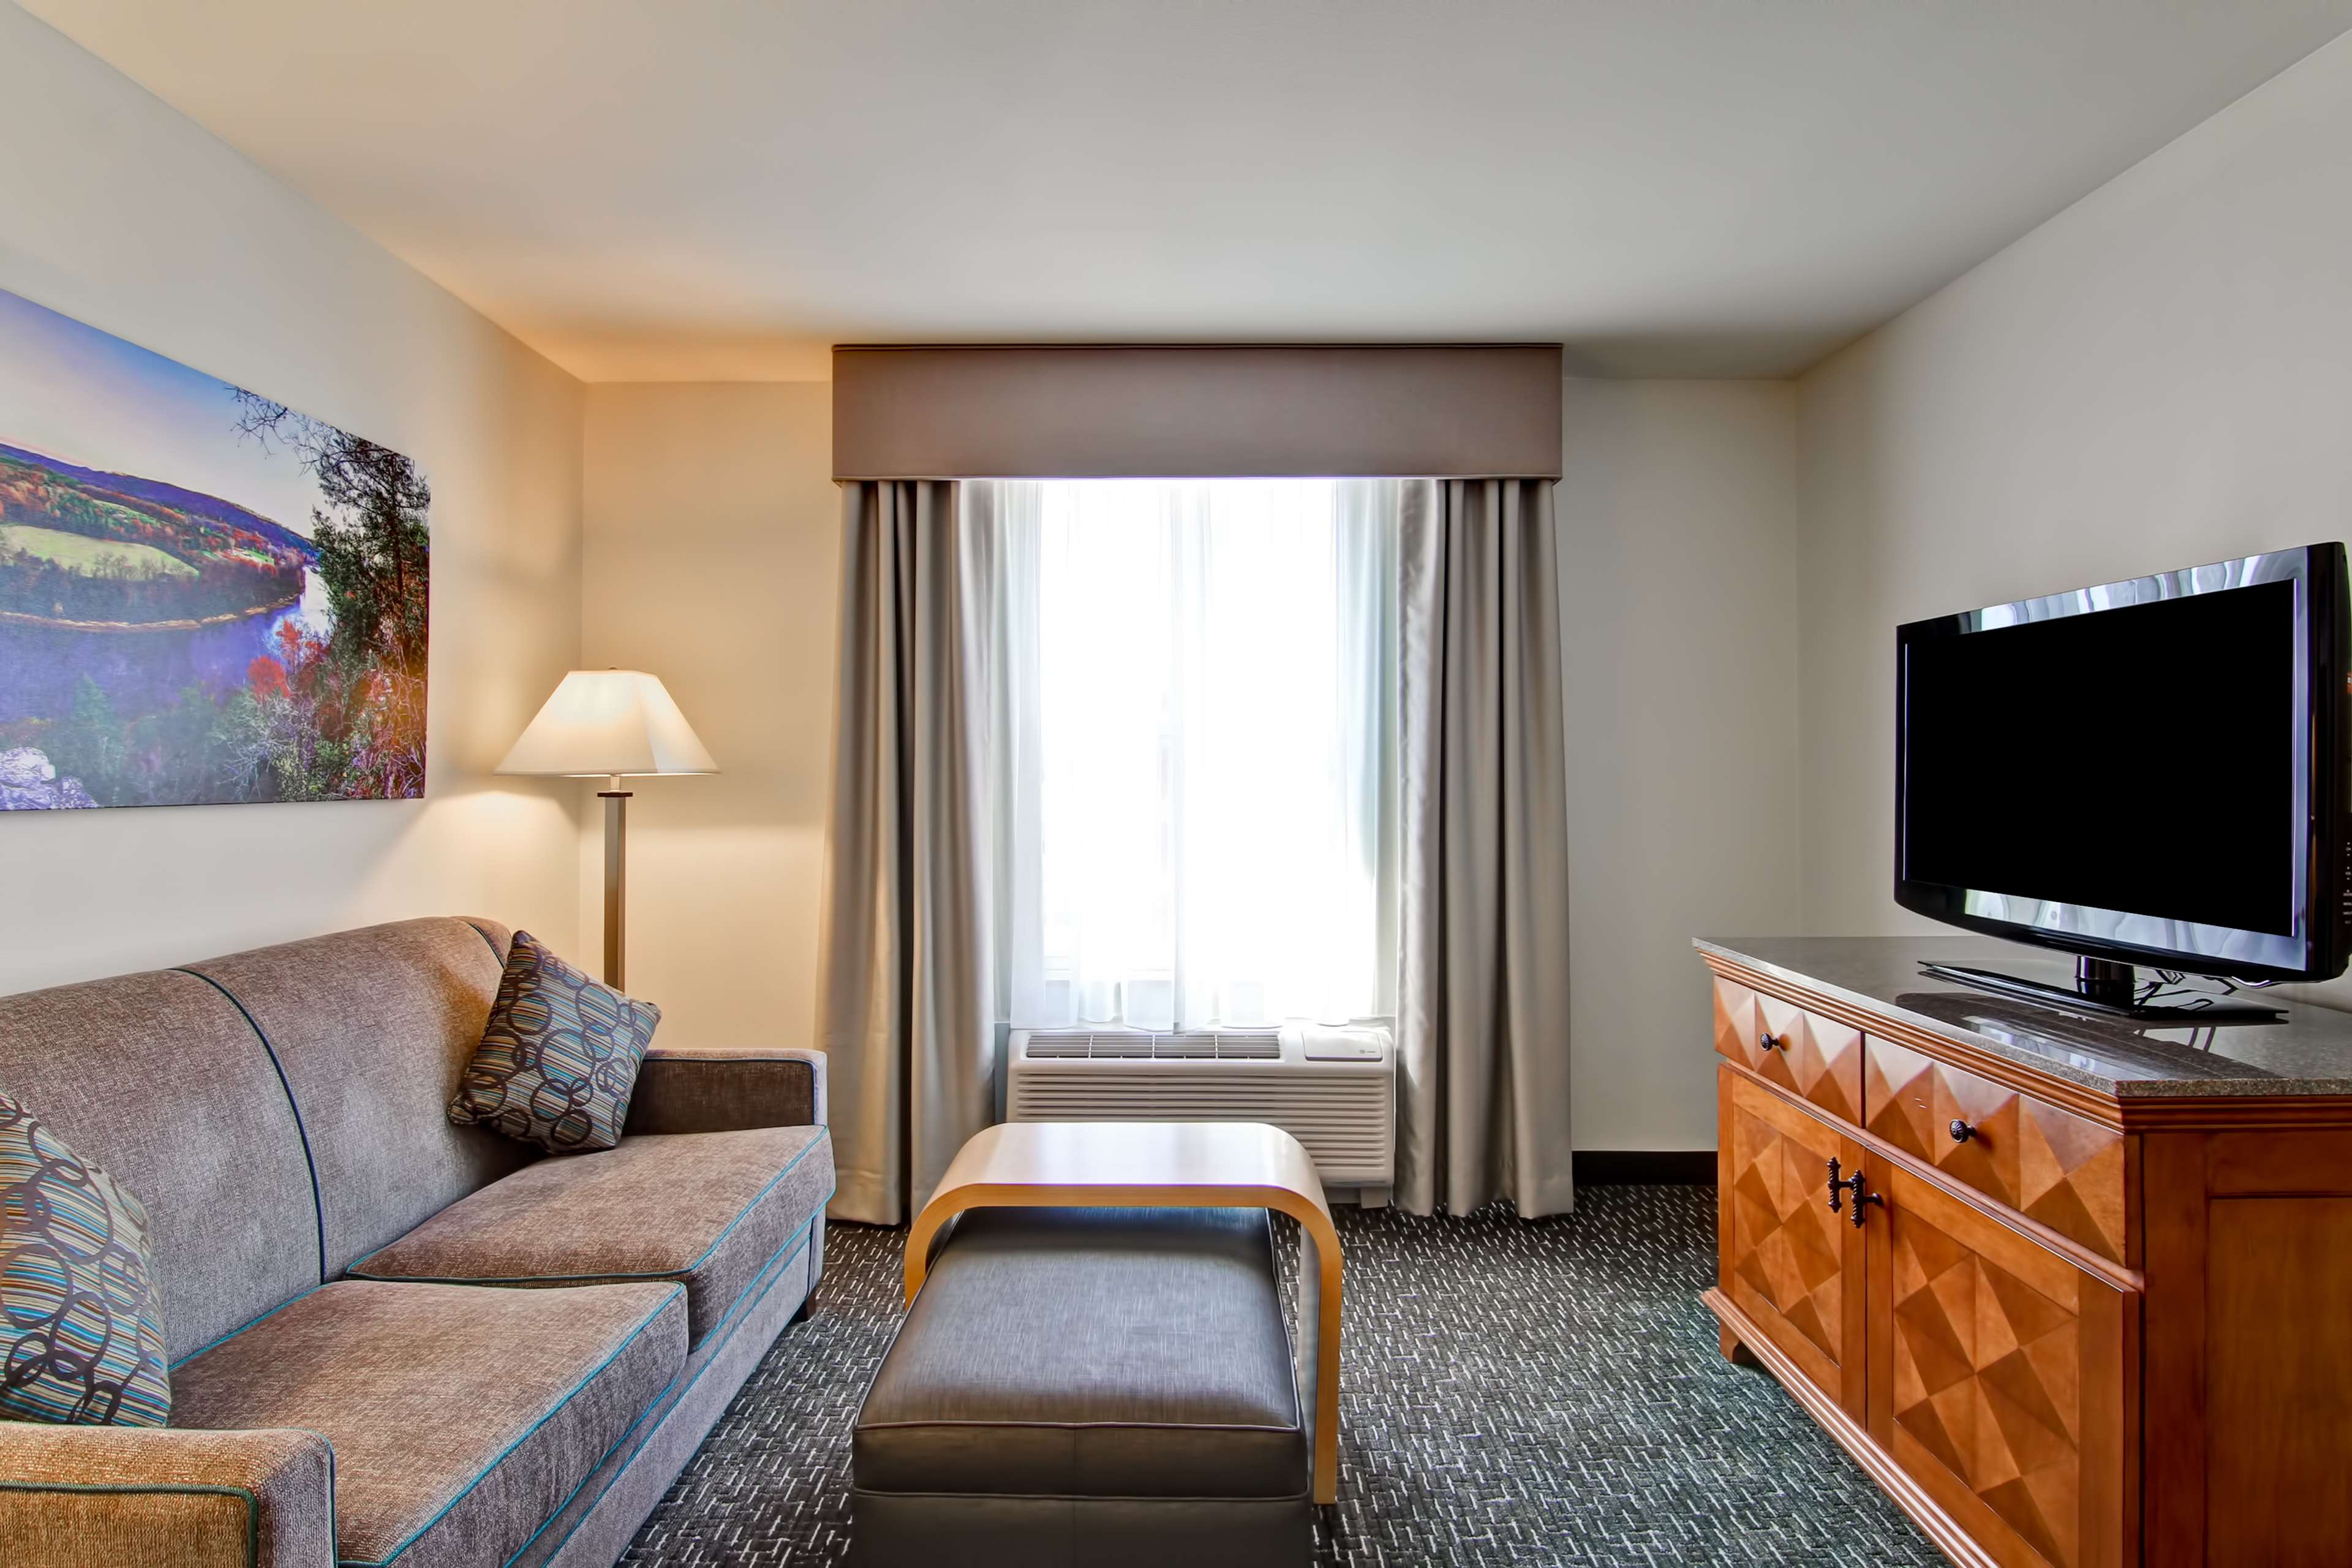 Homewood Suites by Hilton Bentonville-Rogers image 21